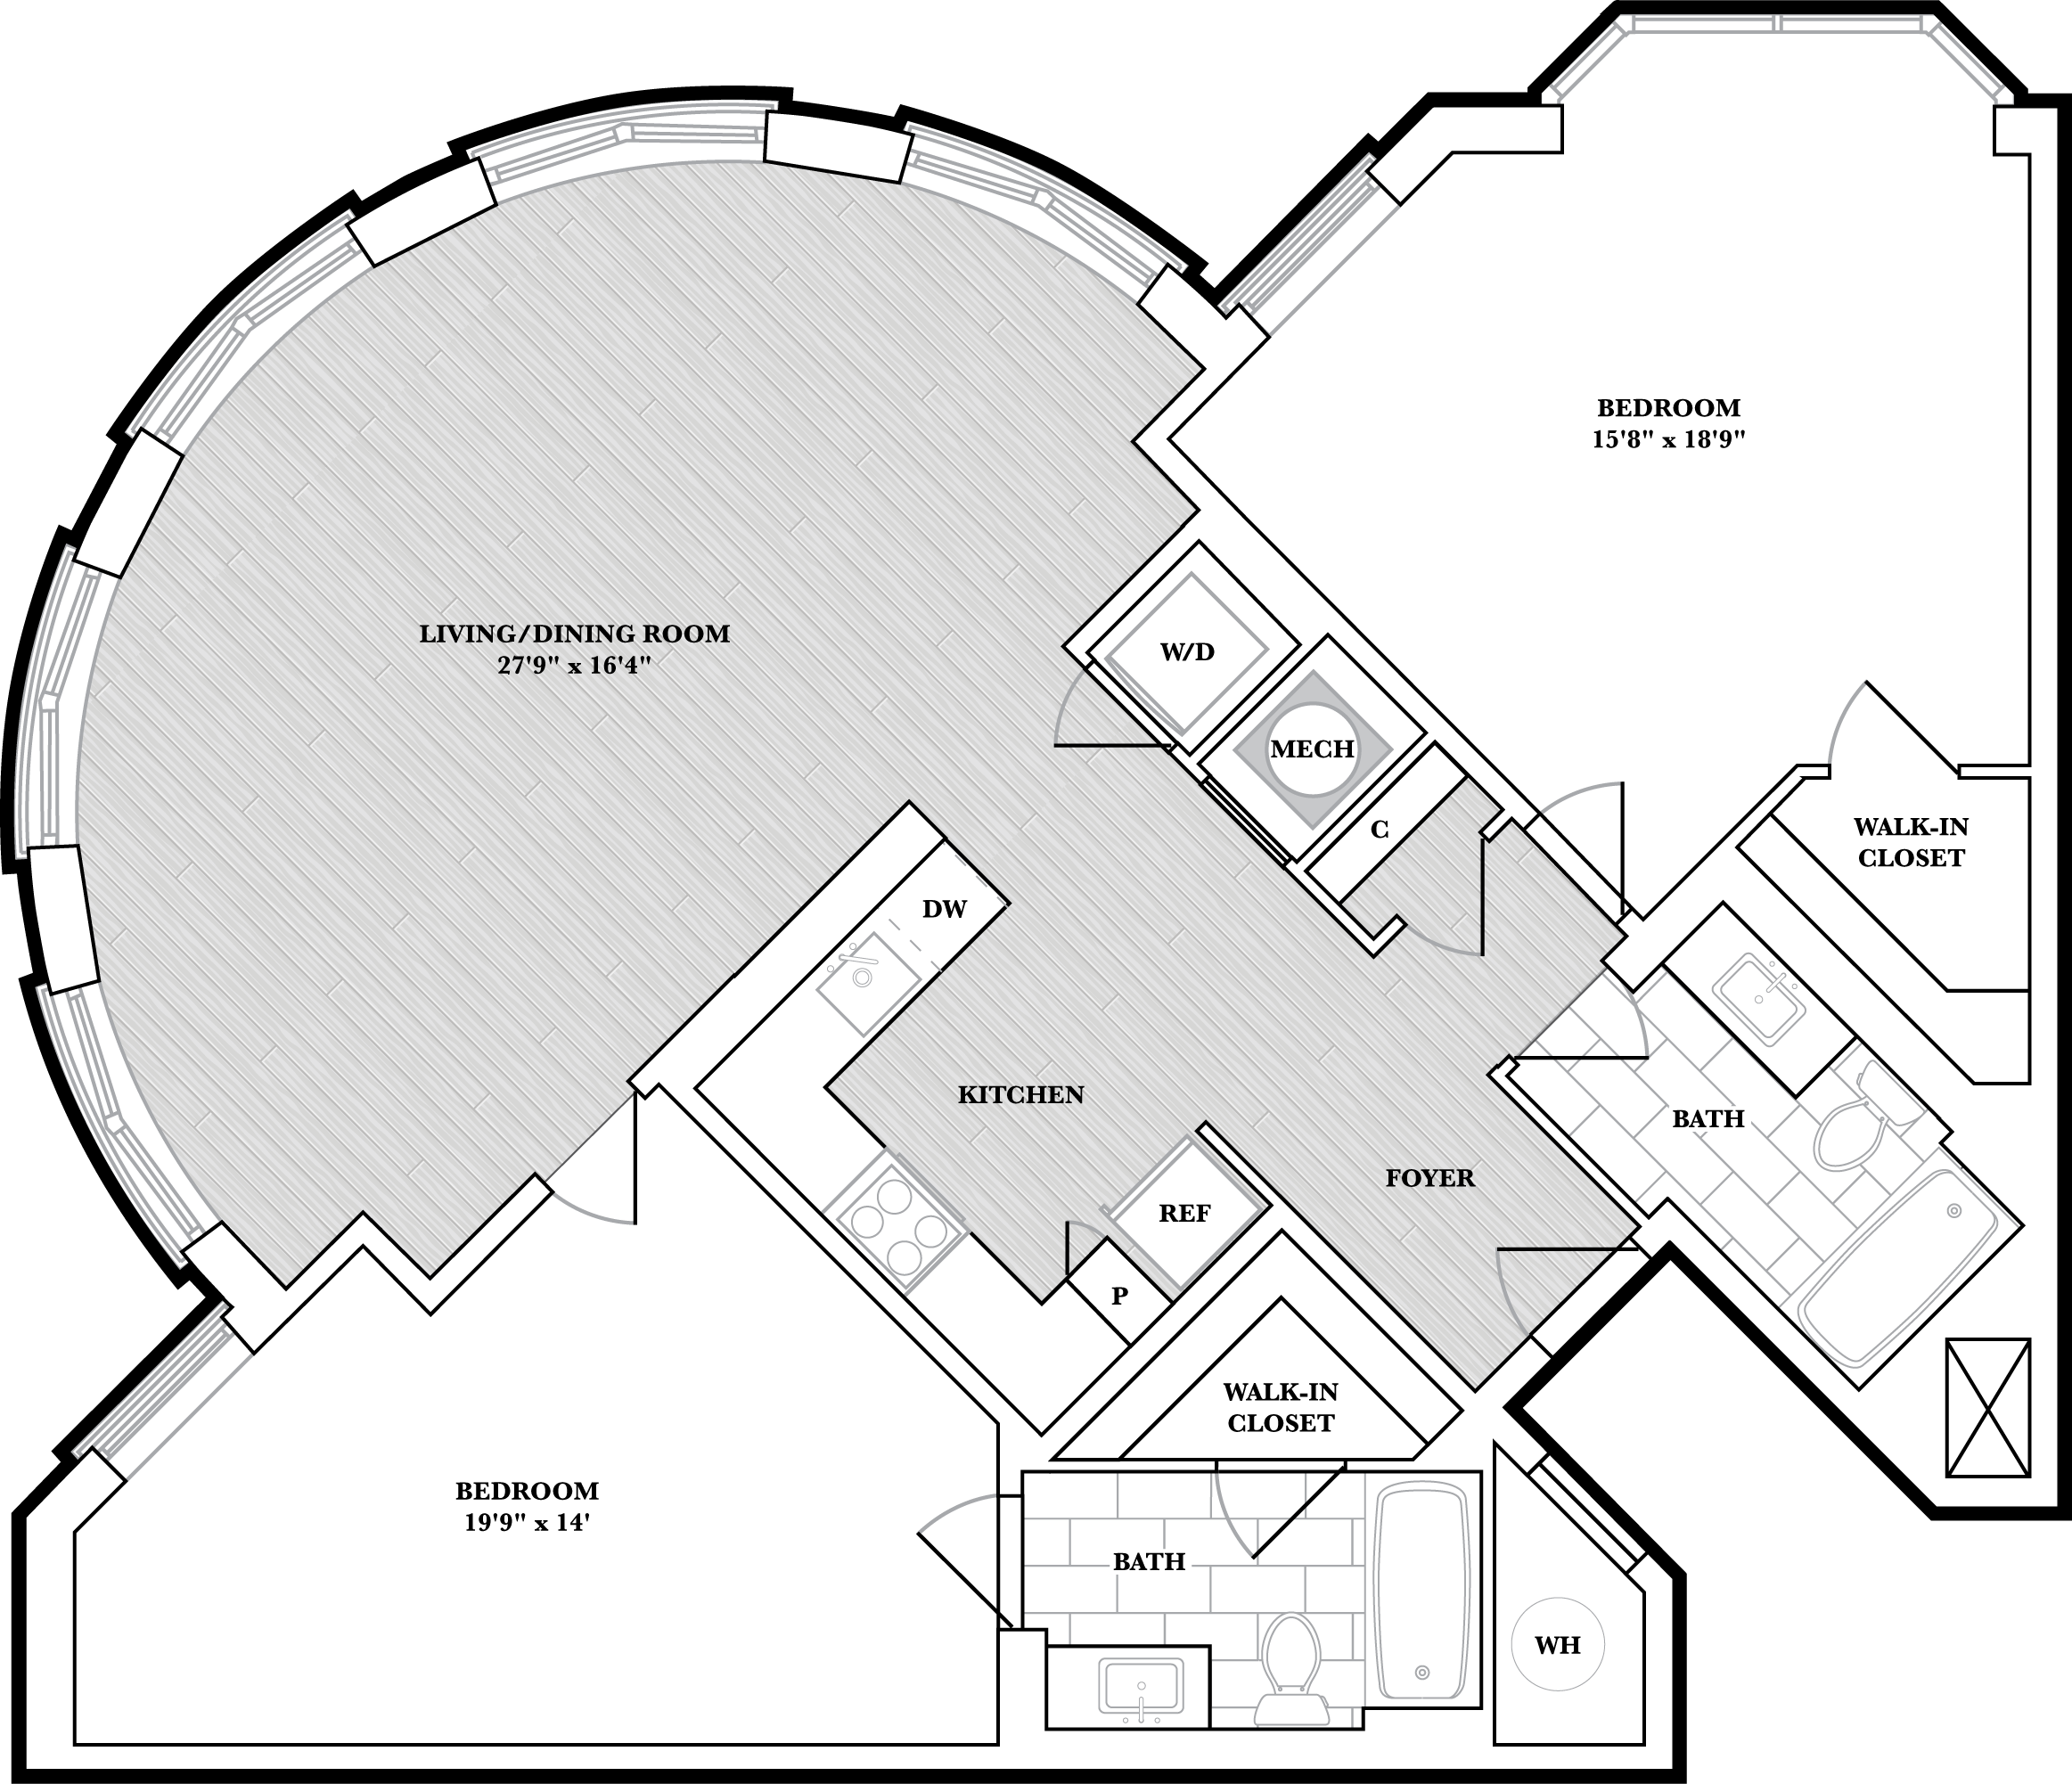 floorplan image of N301